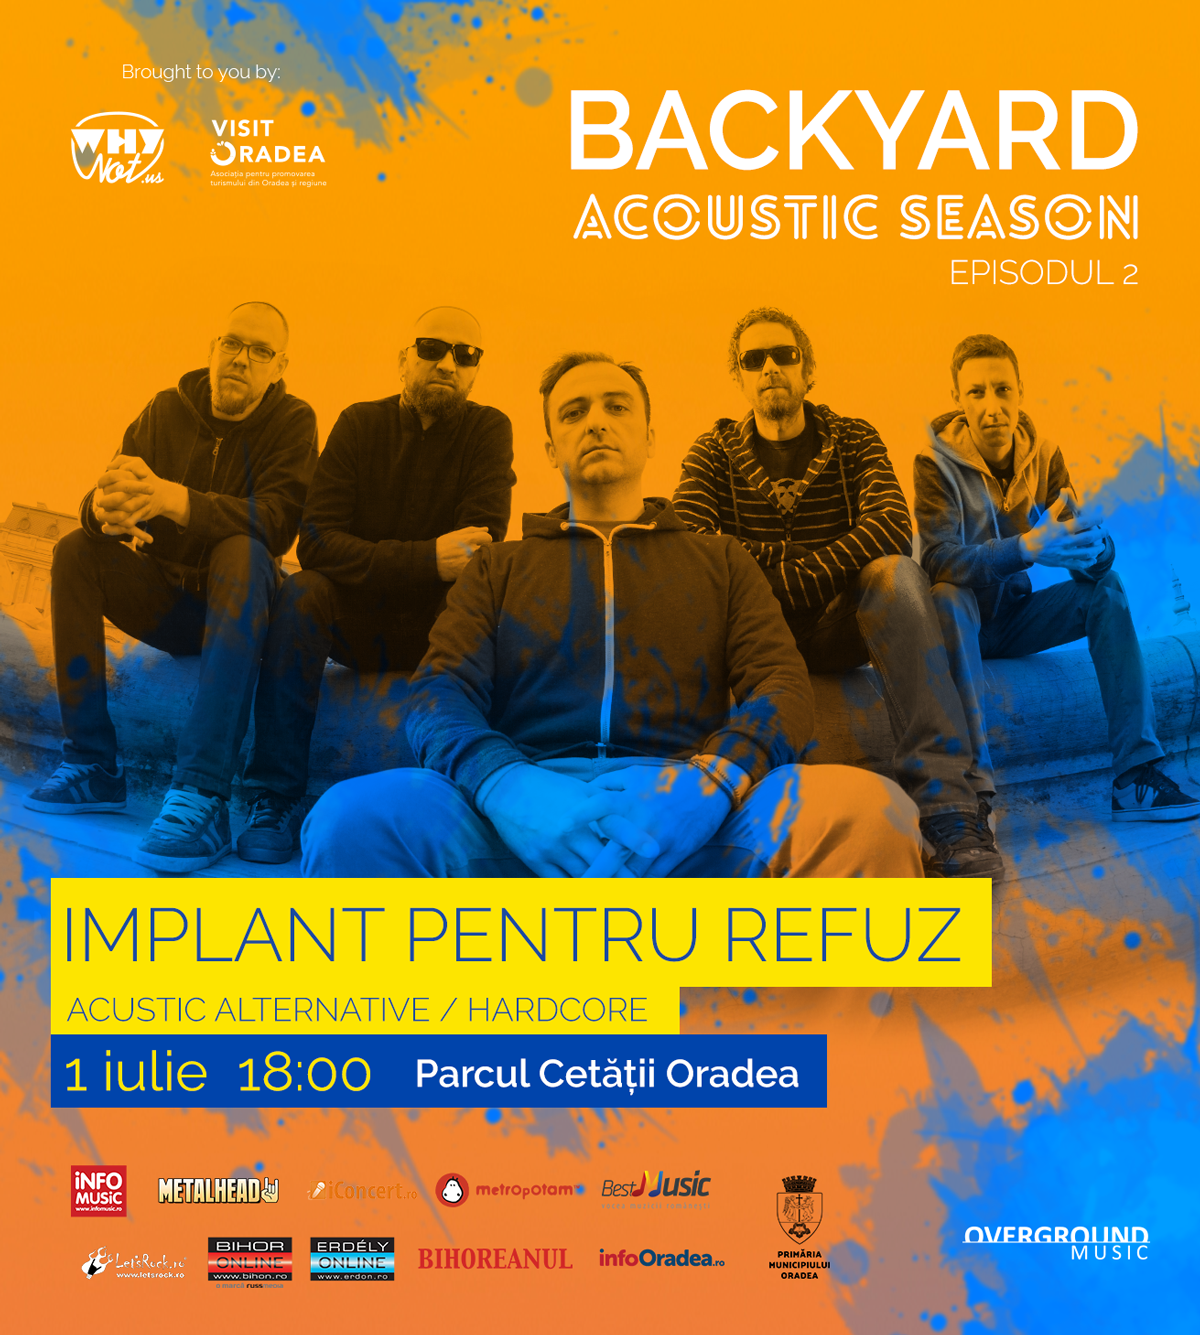 Backyard_Season_Implant_Pentru_Refuz